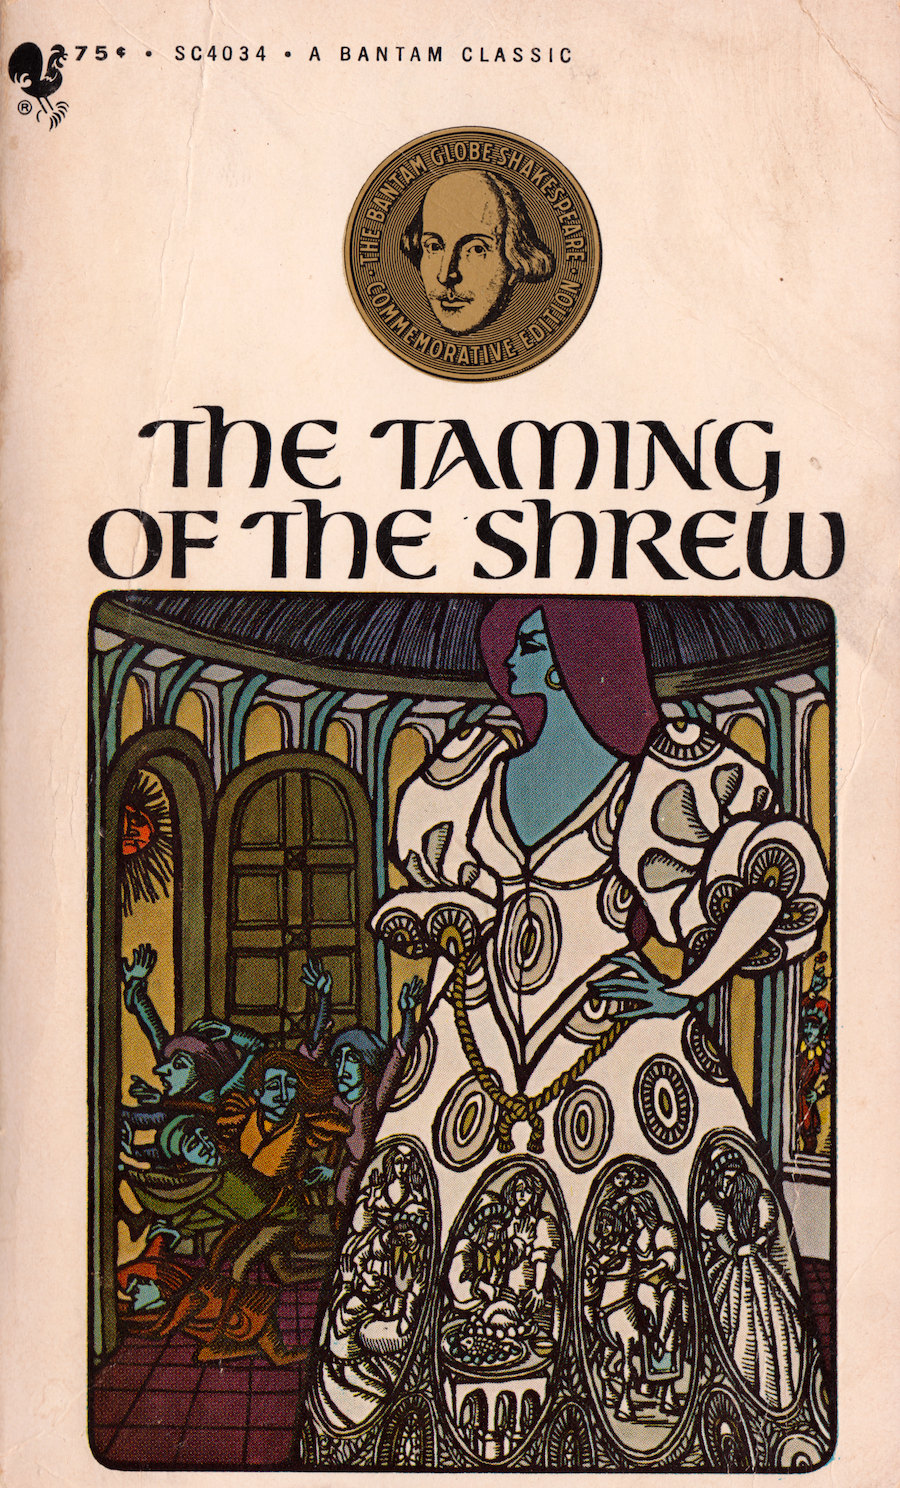 the art of leo and diane dillon shakespeare the taming of the shrew shakespeare the taming of the shrew